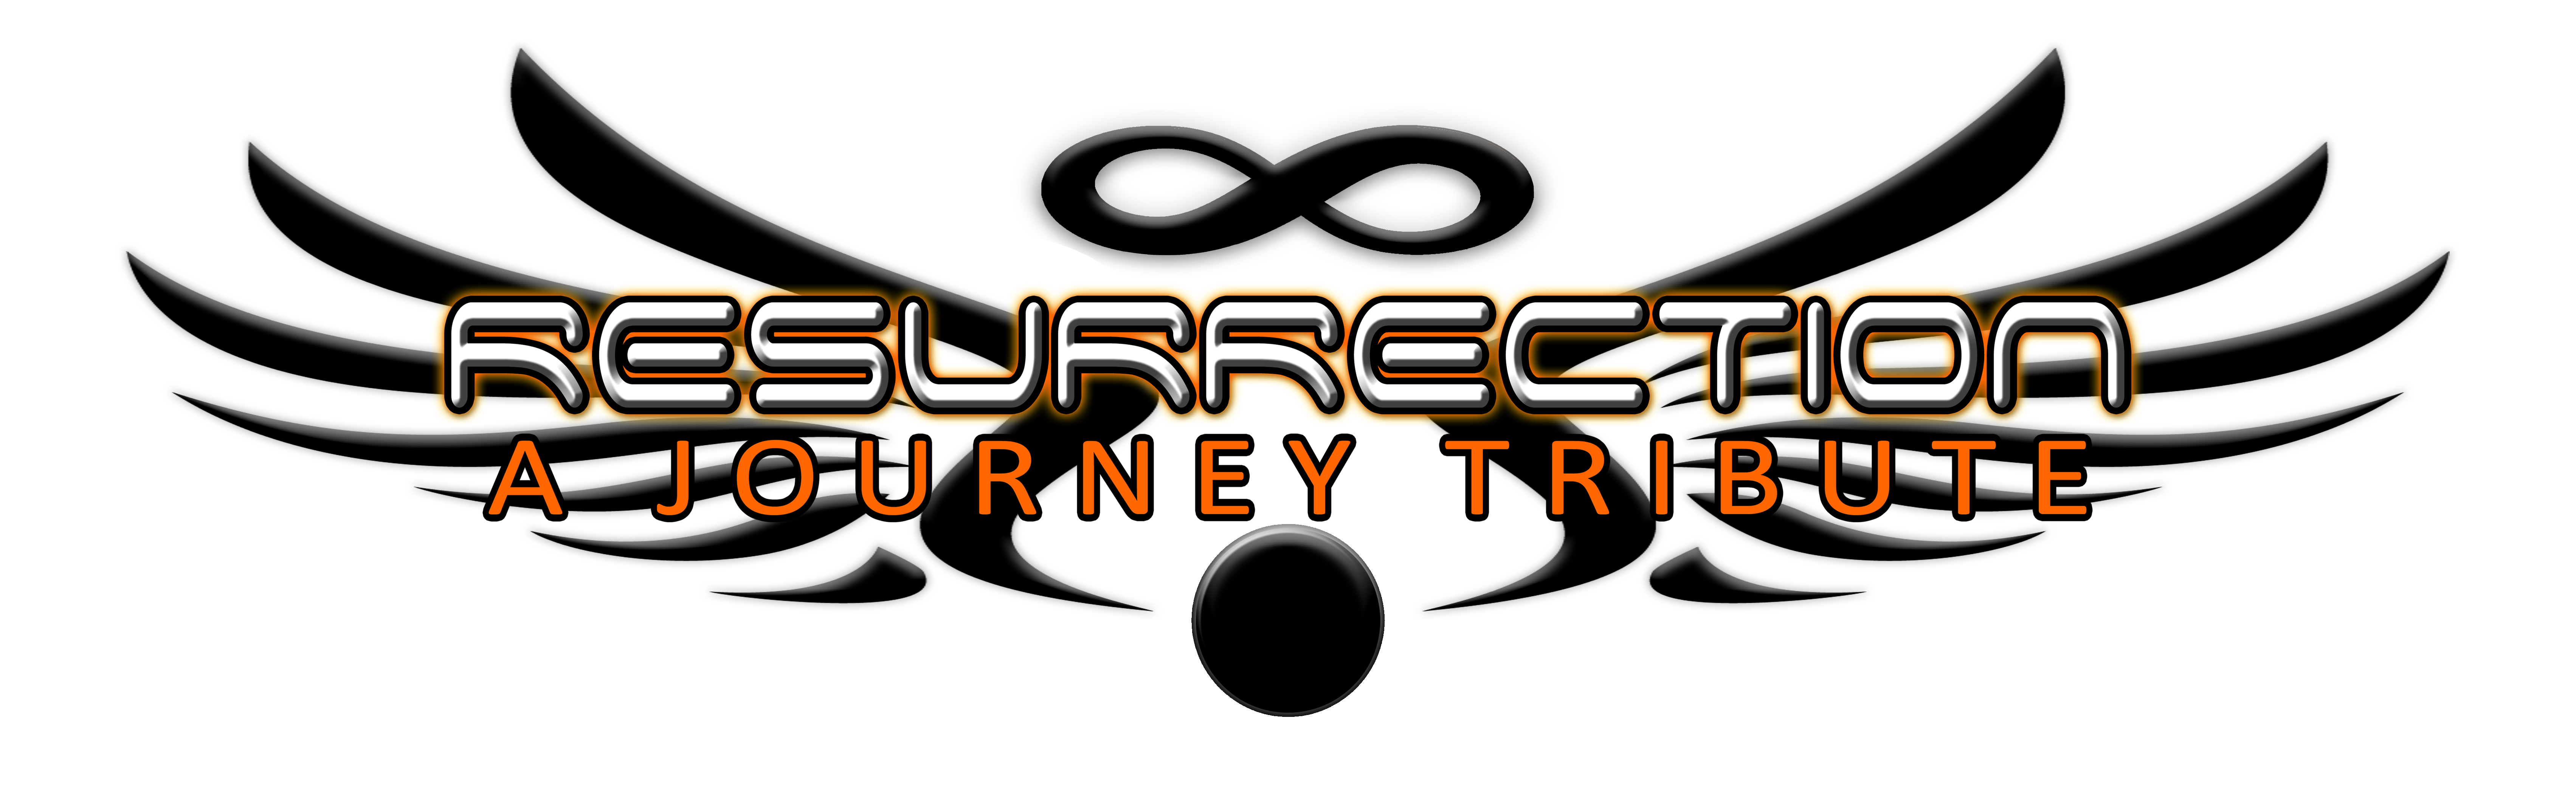 Journey band logo png. Resurrection a tribute the